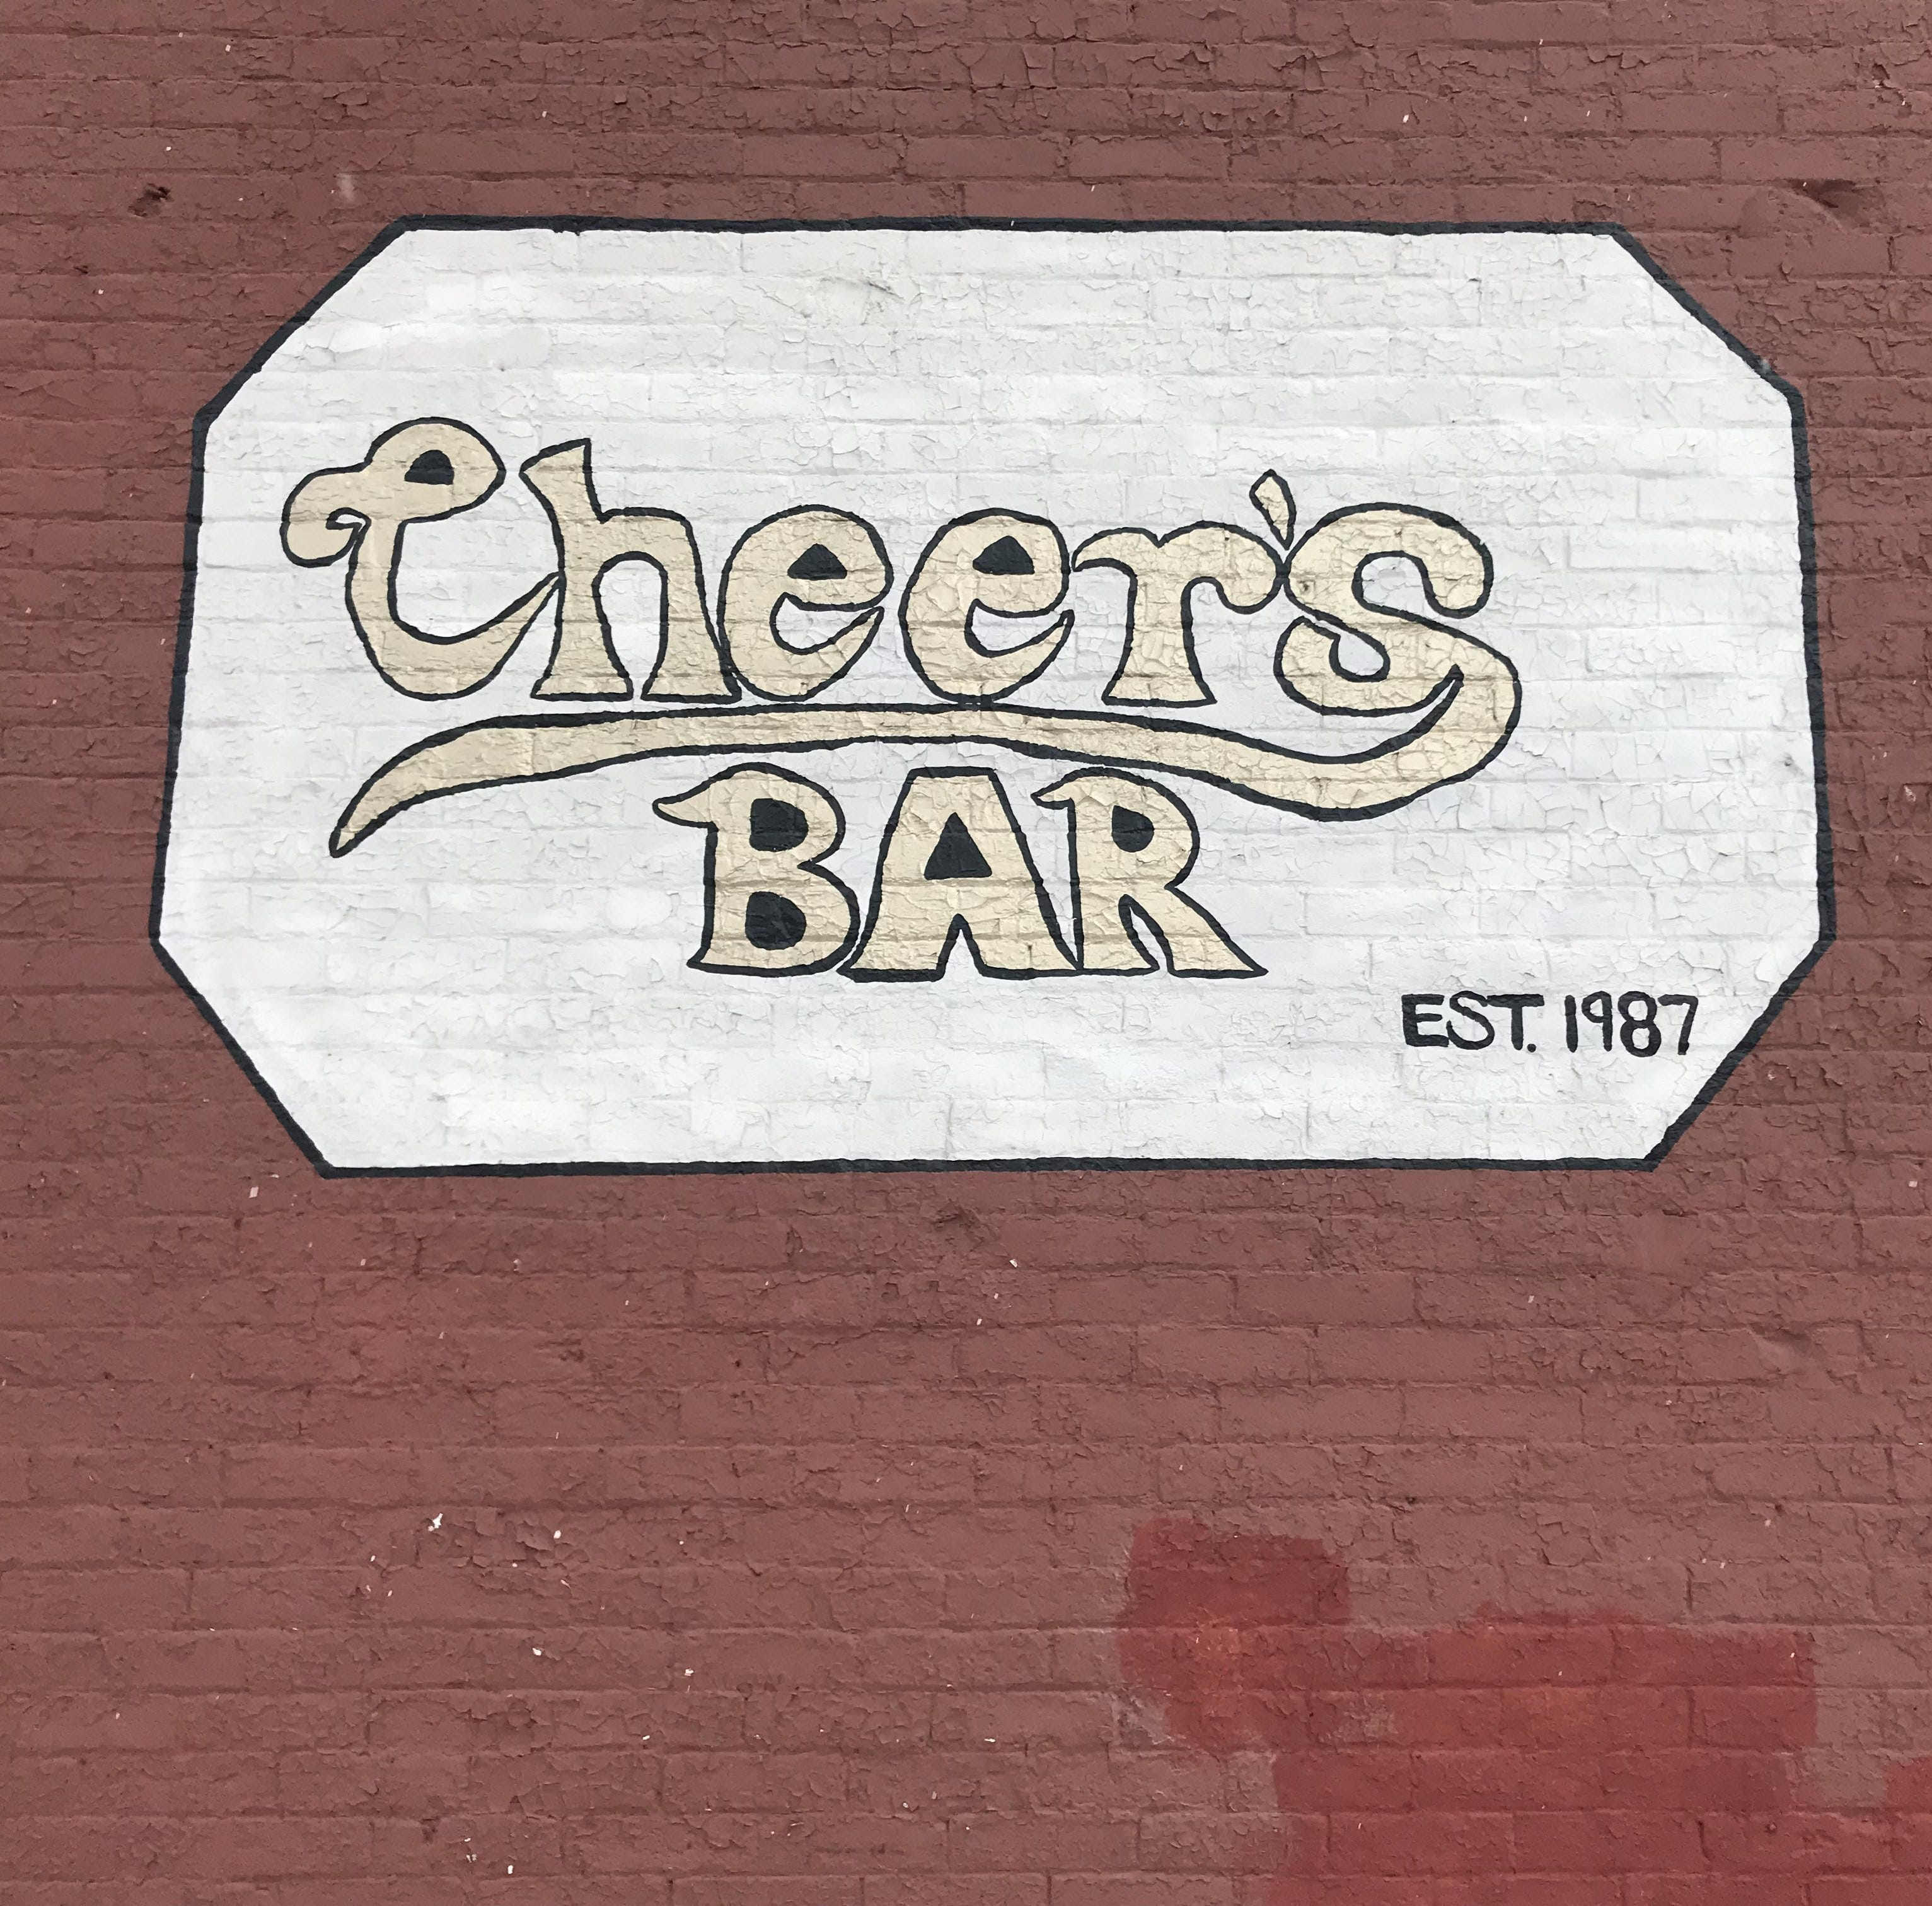 Cheers bar closing due to Thomas Street expansion in Wausau